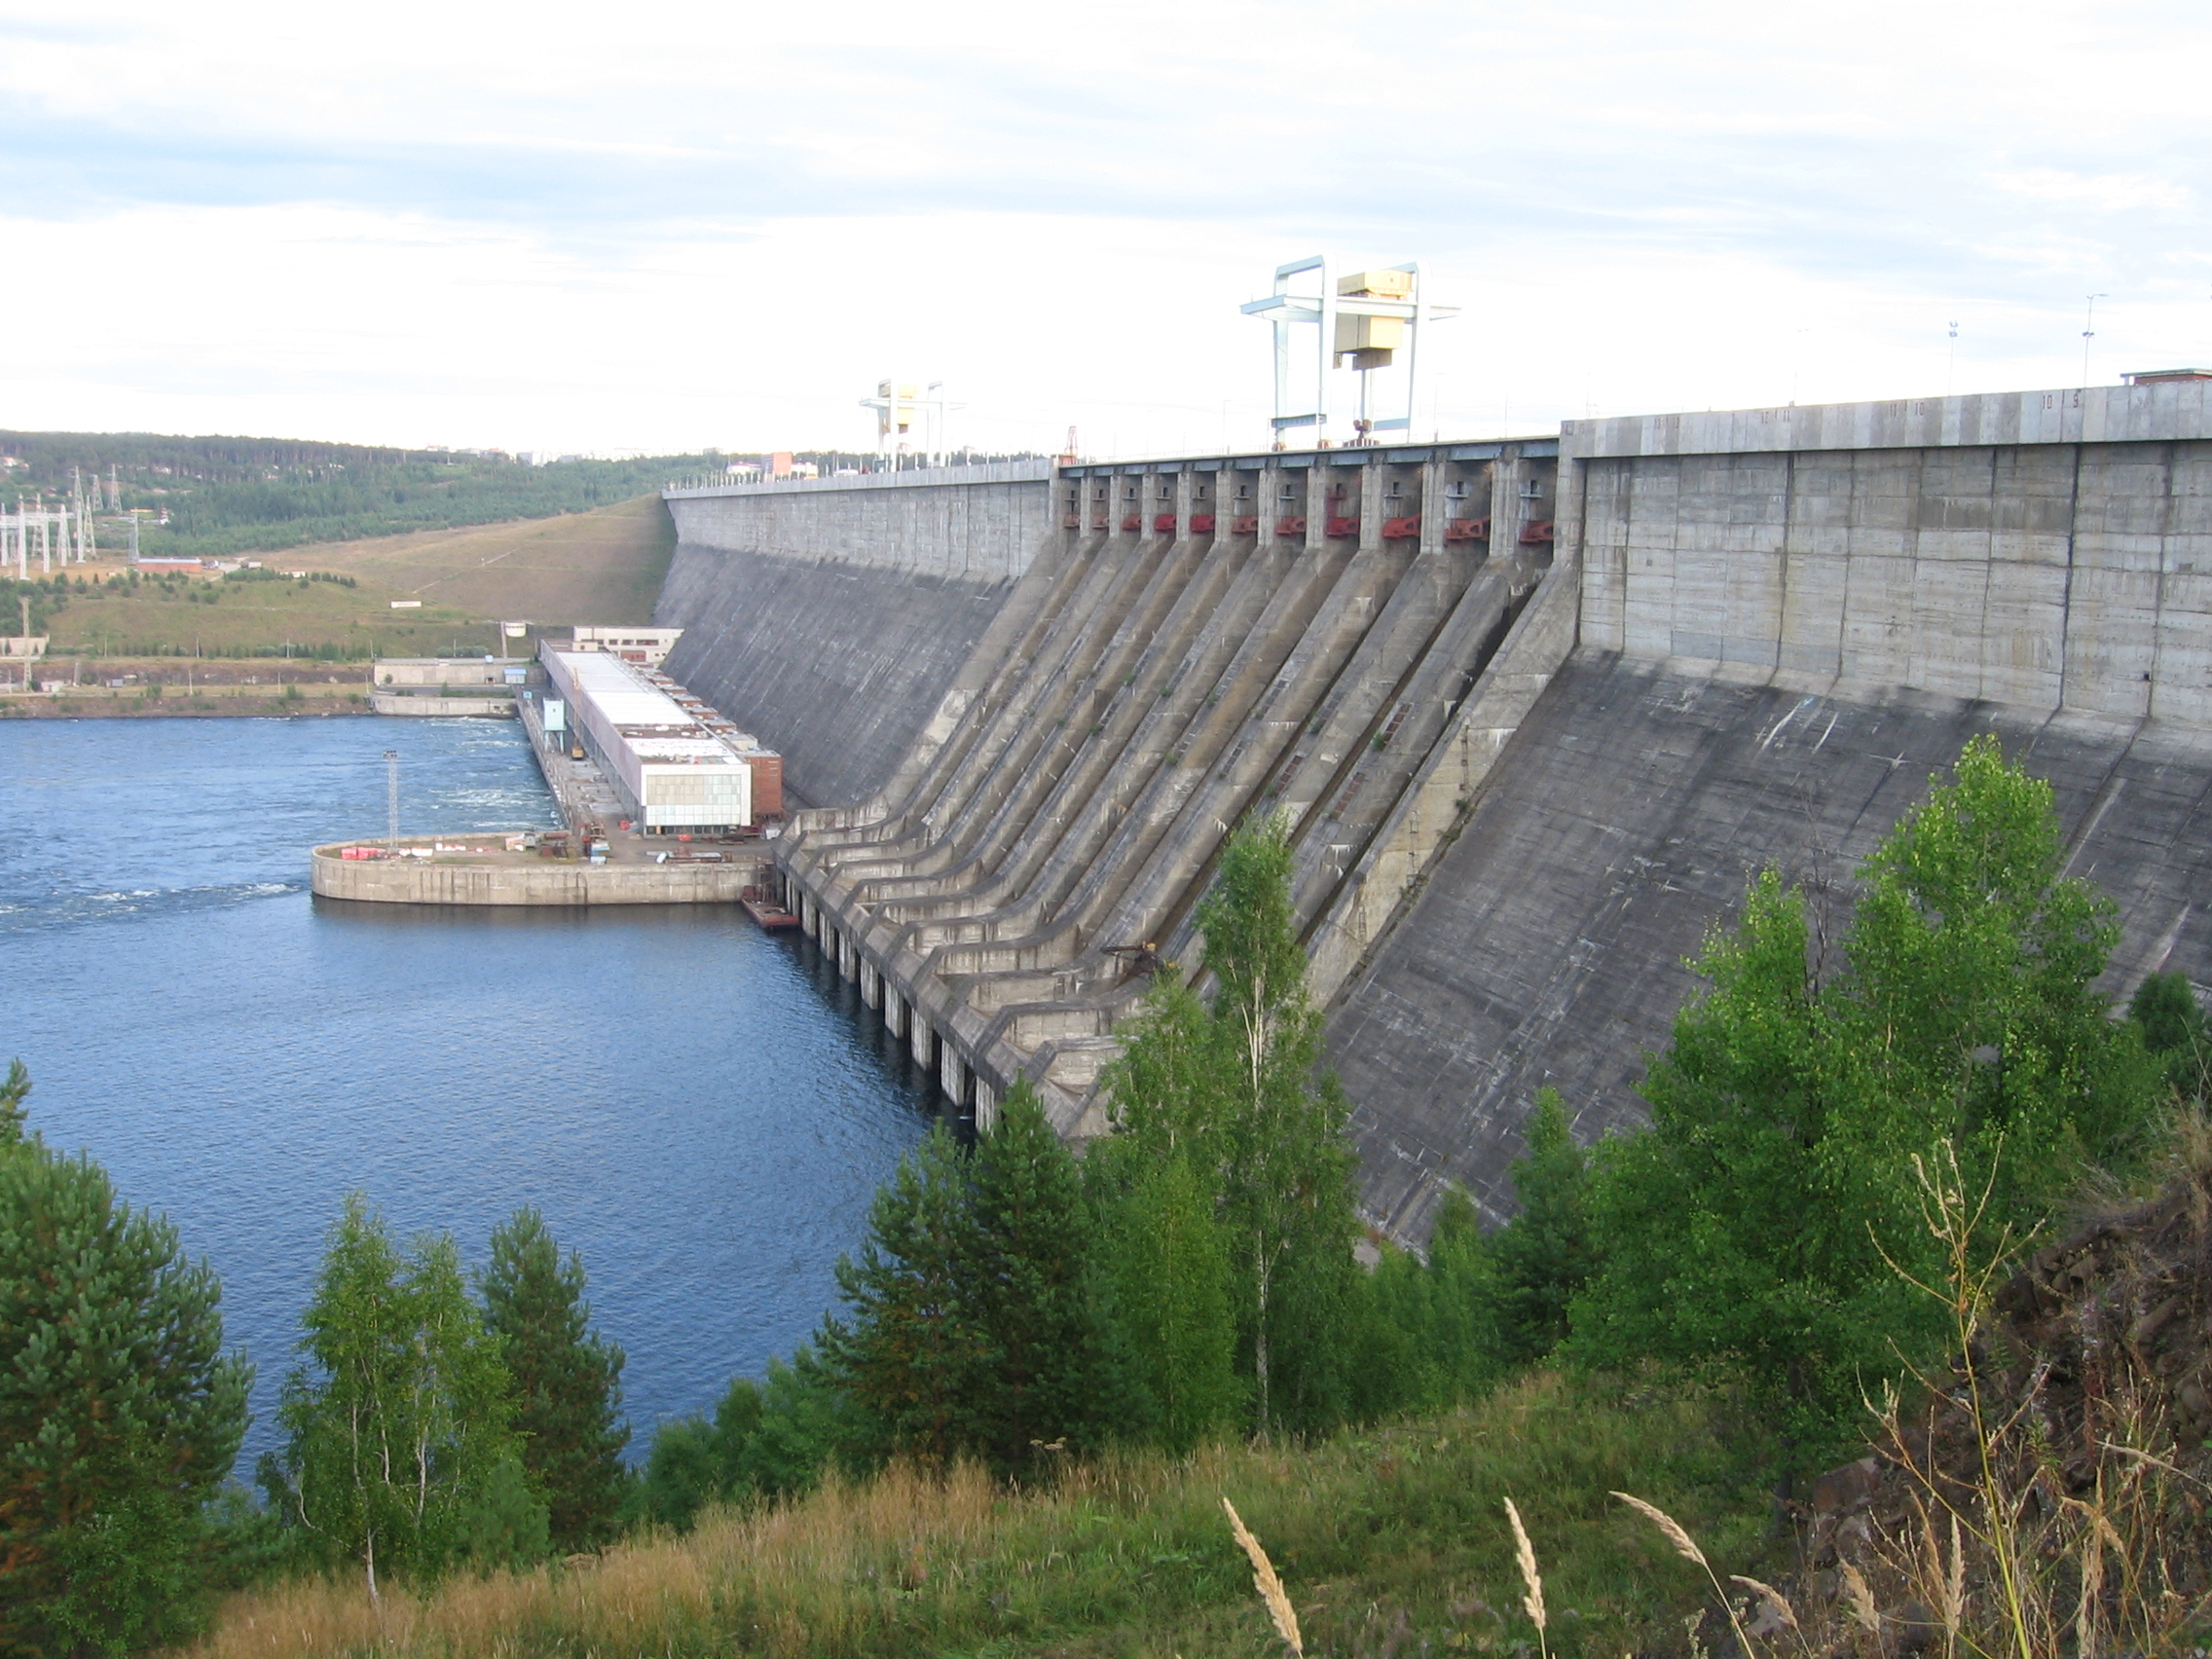 Ust Ilimsk Hydroelectric Power Station